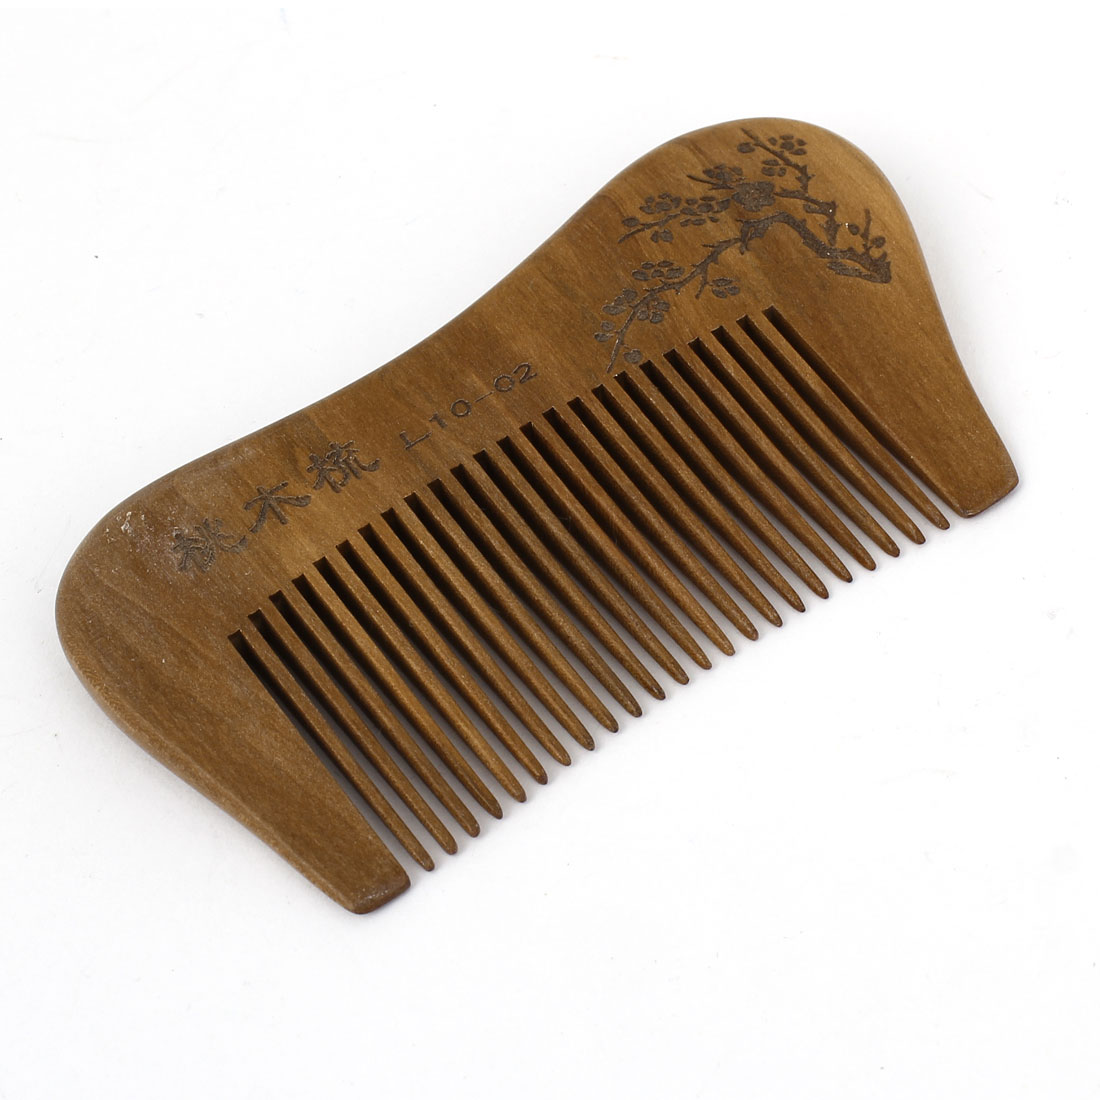 "3.7"" Length Handwork Carved Wood Narrow Tooth Hair Care Comb Unisex"